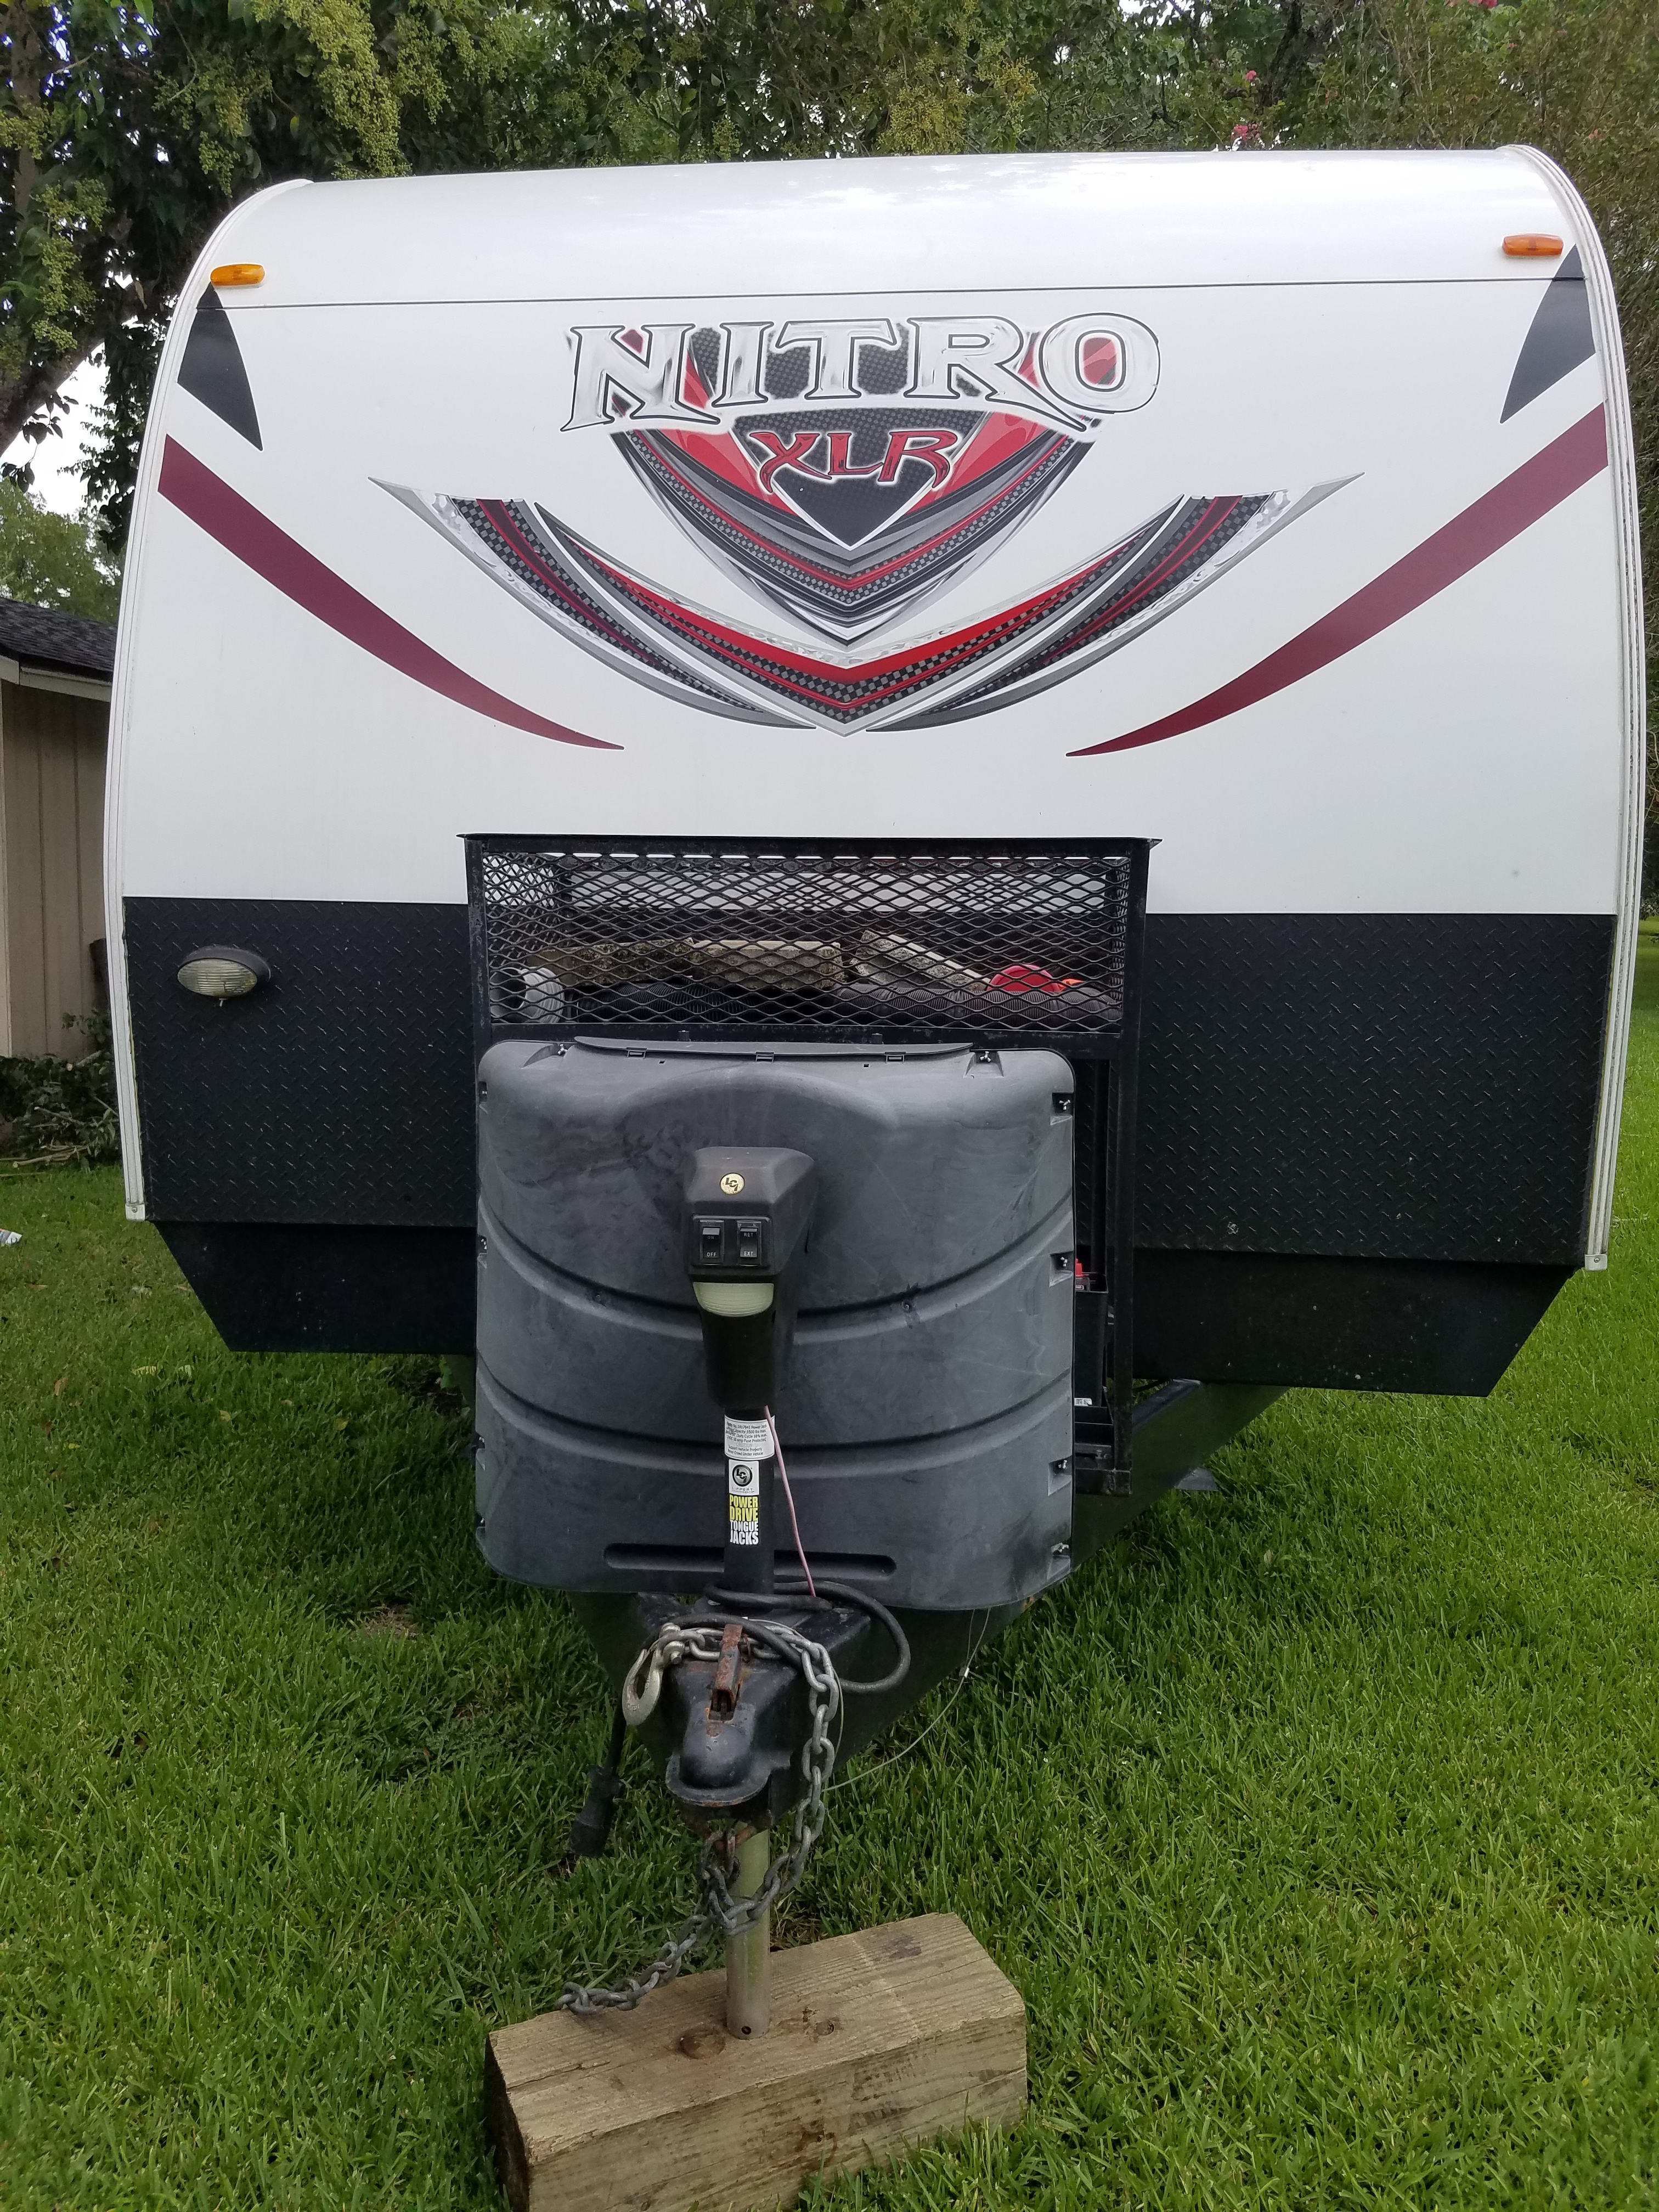 automatic trailer jack for easy hitching and unhitching.. forest river nitro xlr 2013